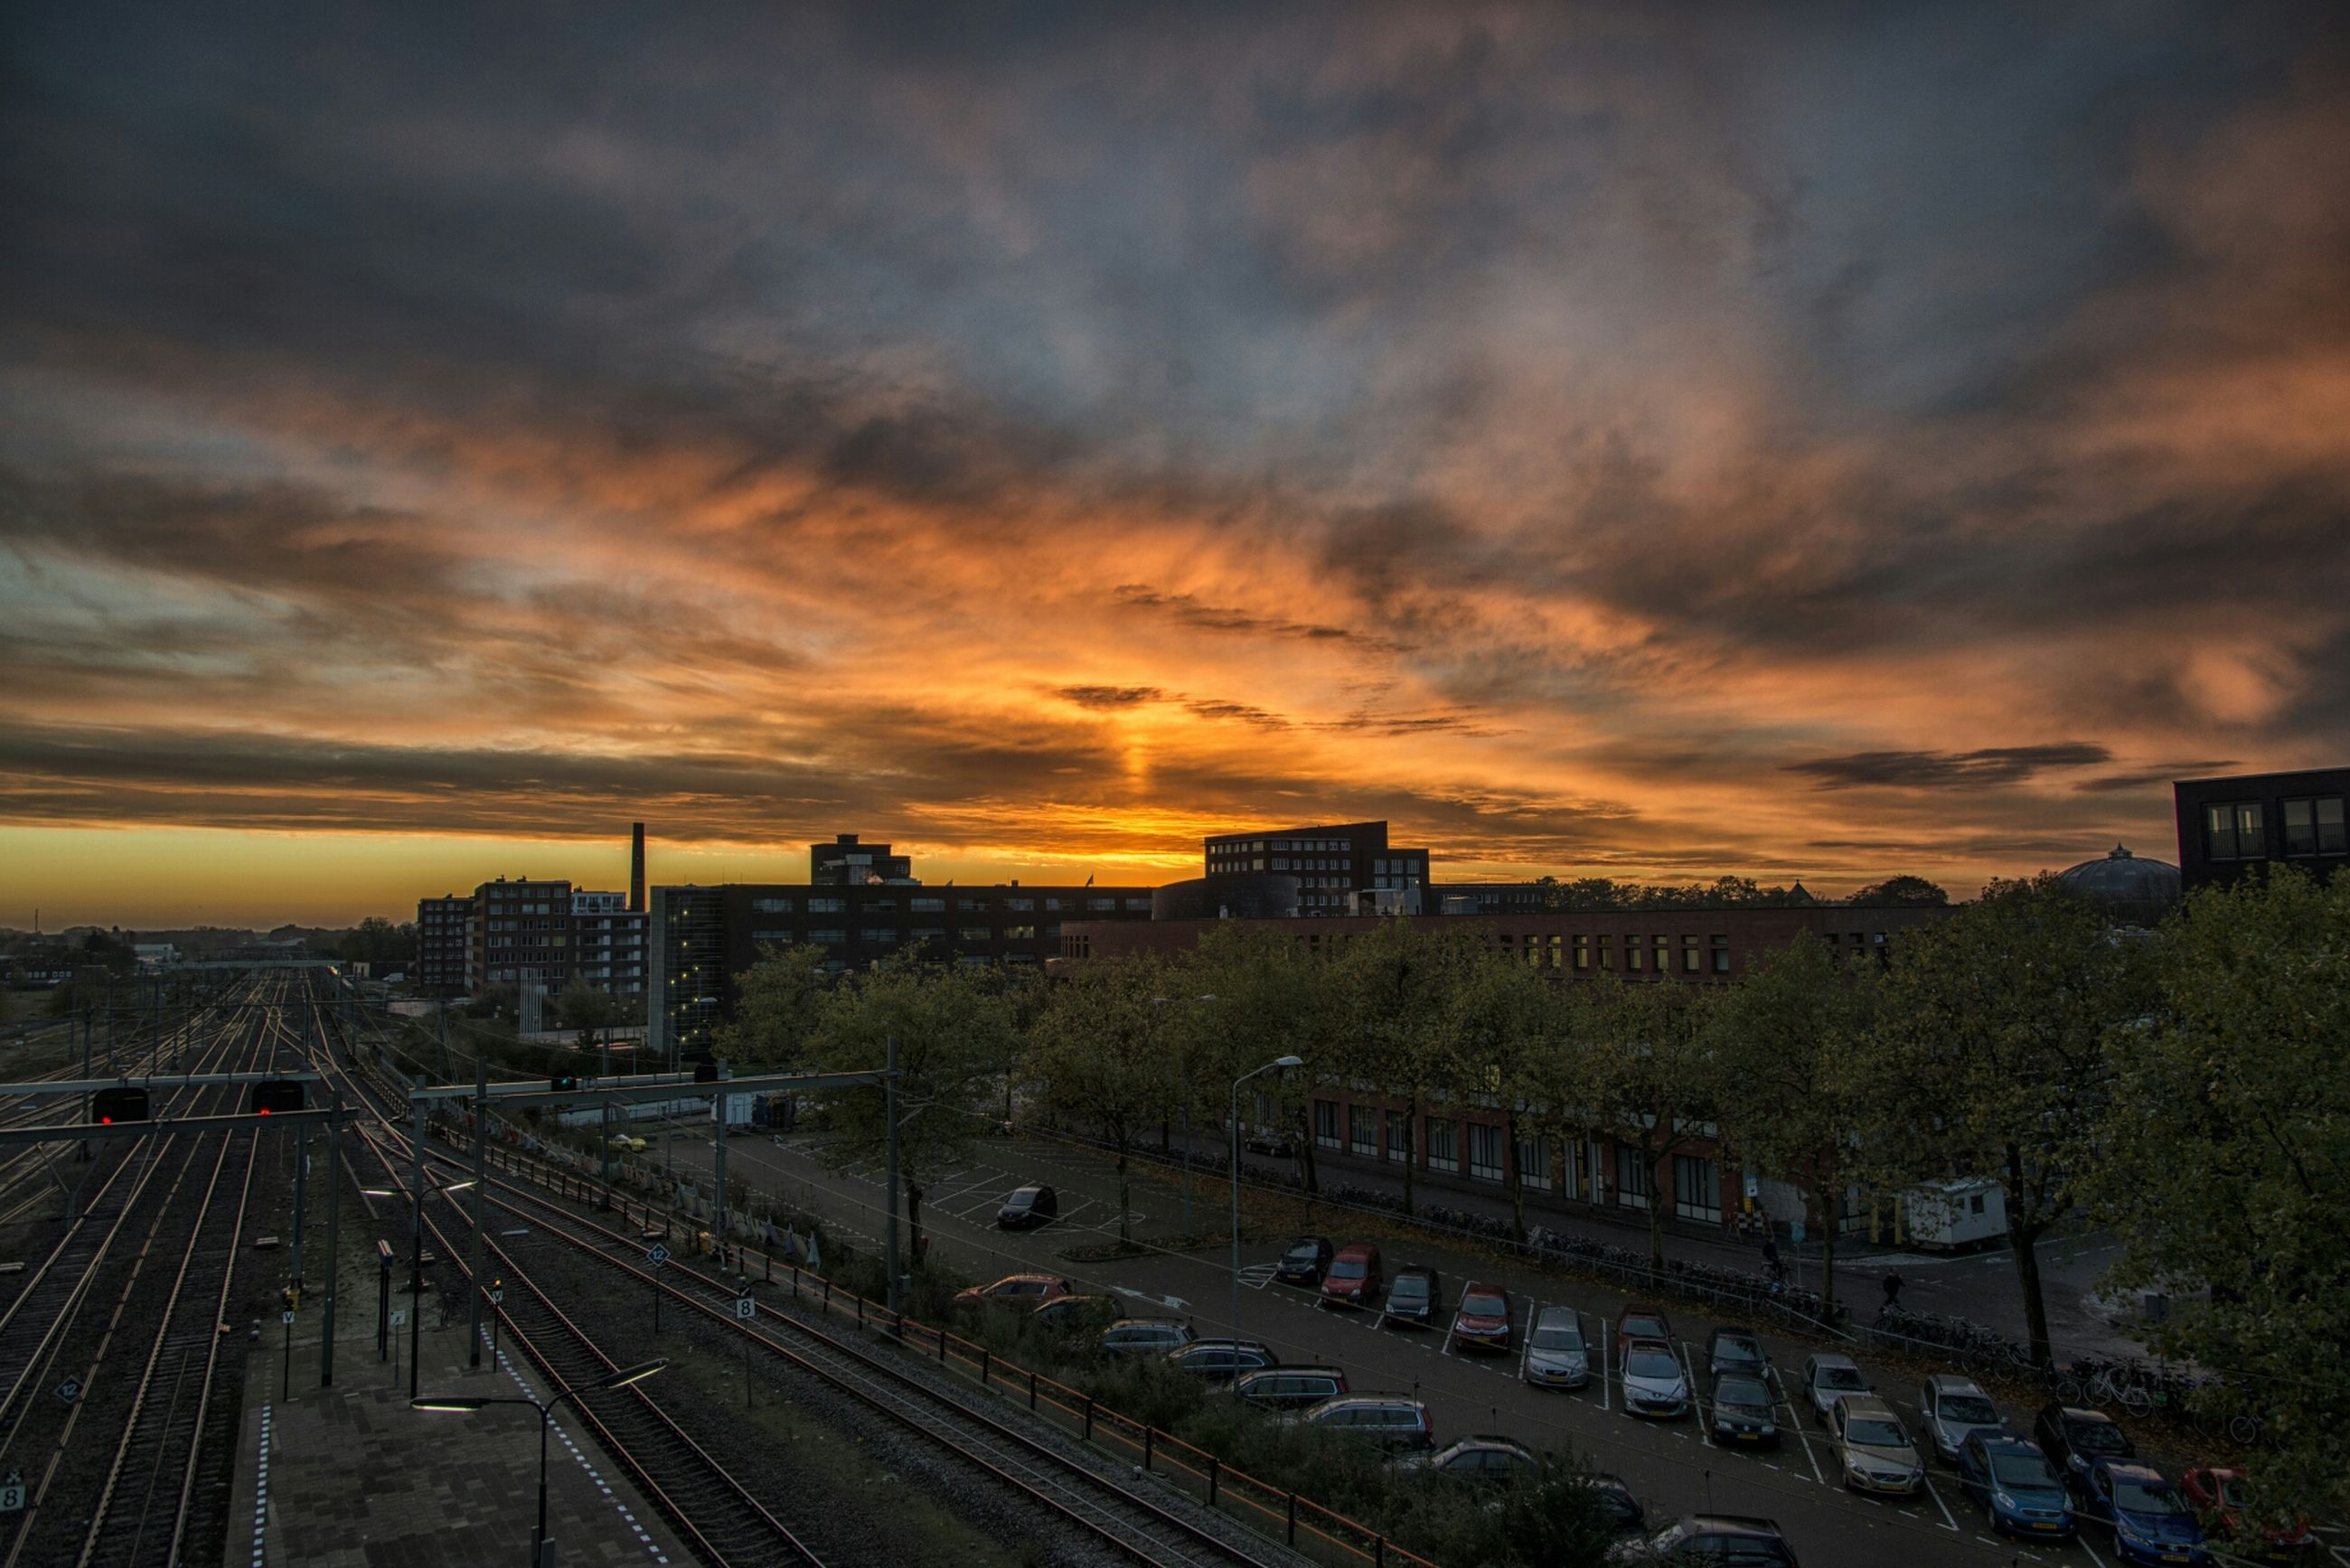 transportation, sunset, sky, cloud - sky, high angle view, architecture, land vehicle, railroad track, built structure, city, orange color, mode of transport, building exterior, car, cloudy, road, rail transportation, public transportation, the way forward, street